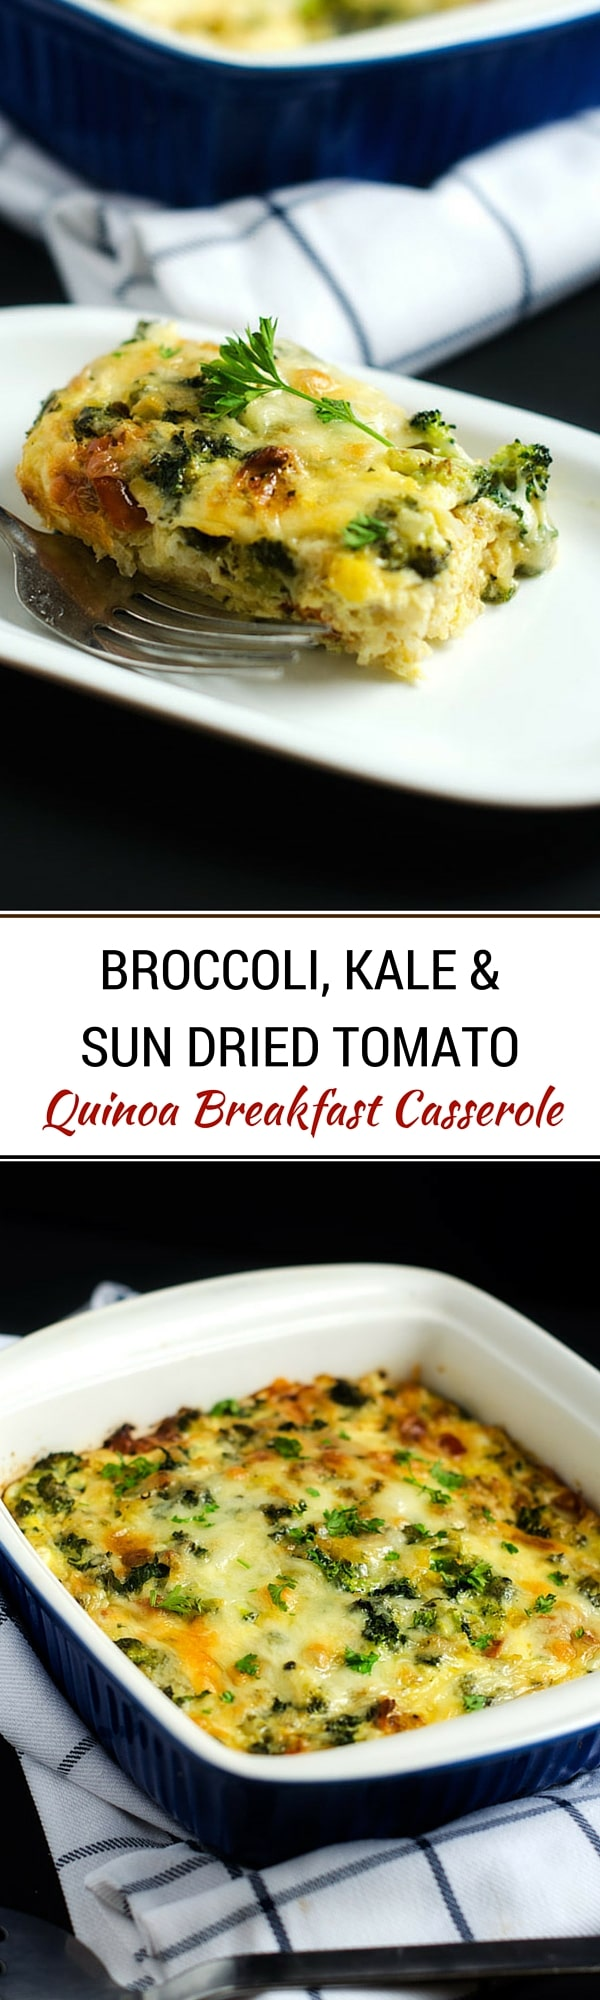 Broccoli, Kale & Sun Dried Tomato Quinoa Breakfast Casserole - This vegetarian breakfast casserole is the perfect healthy way to start your day!  - WendyPolisi.com #thereciperedux